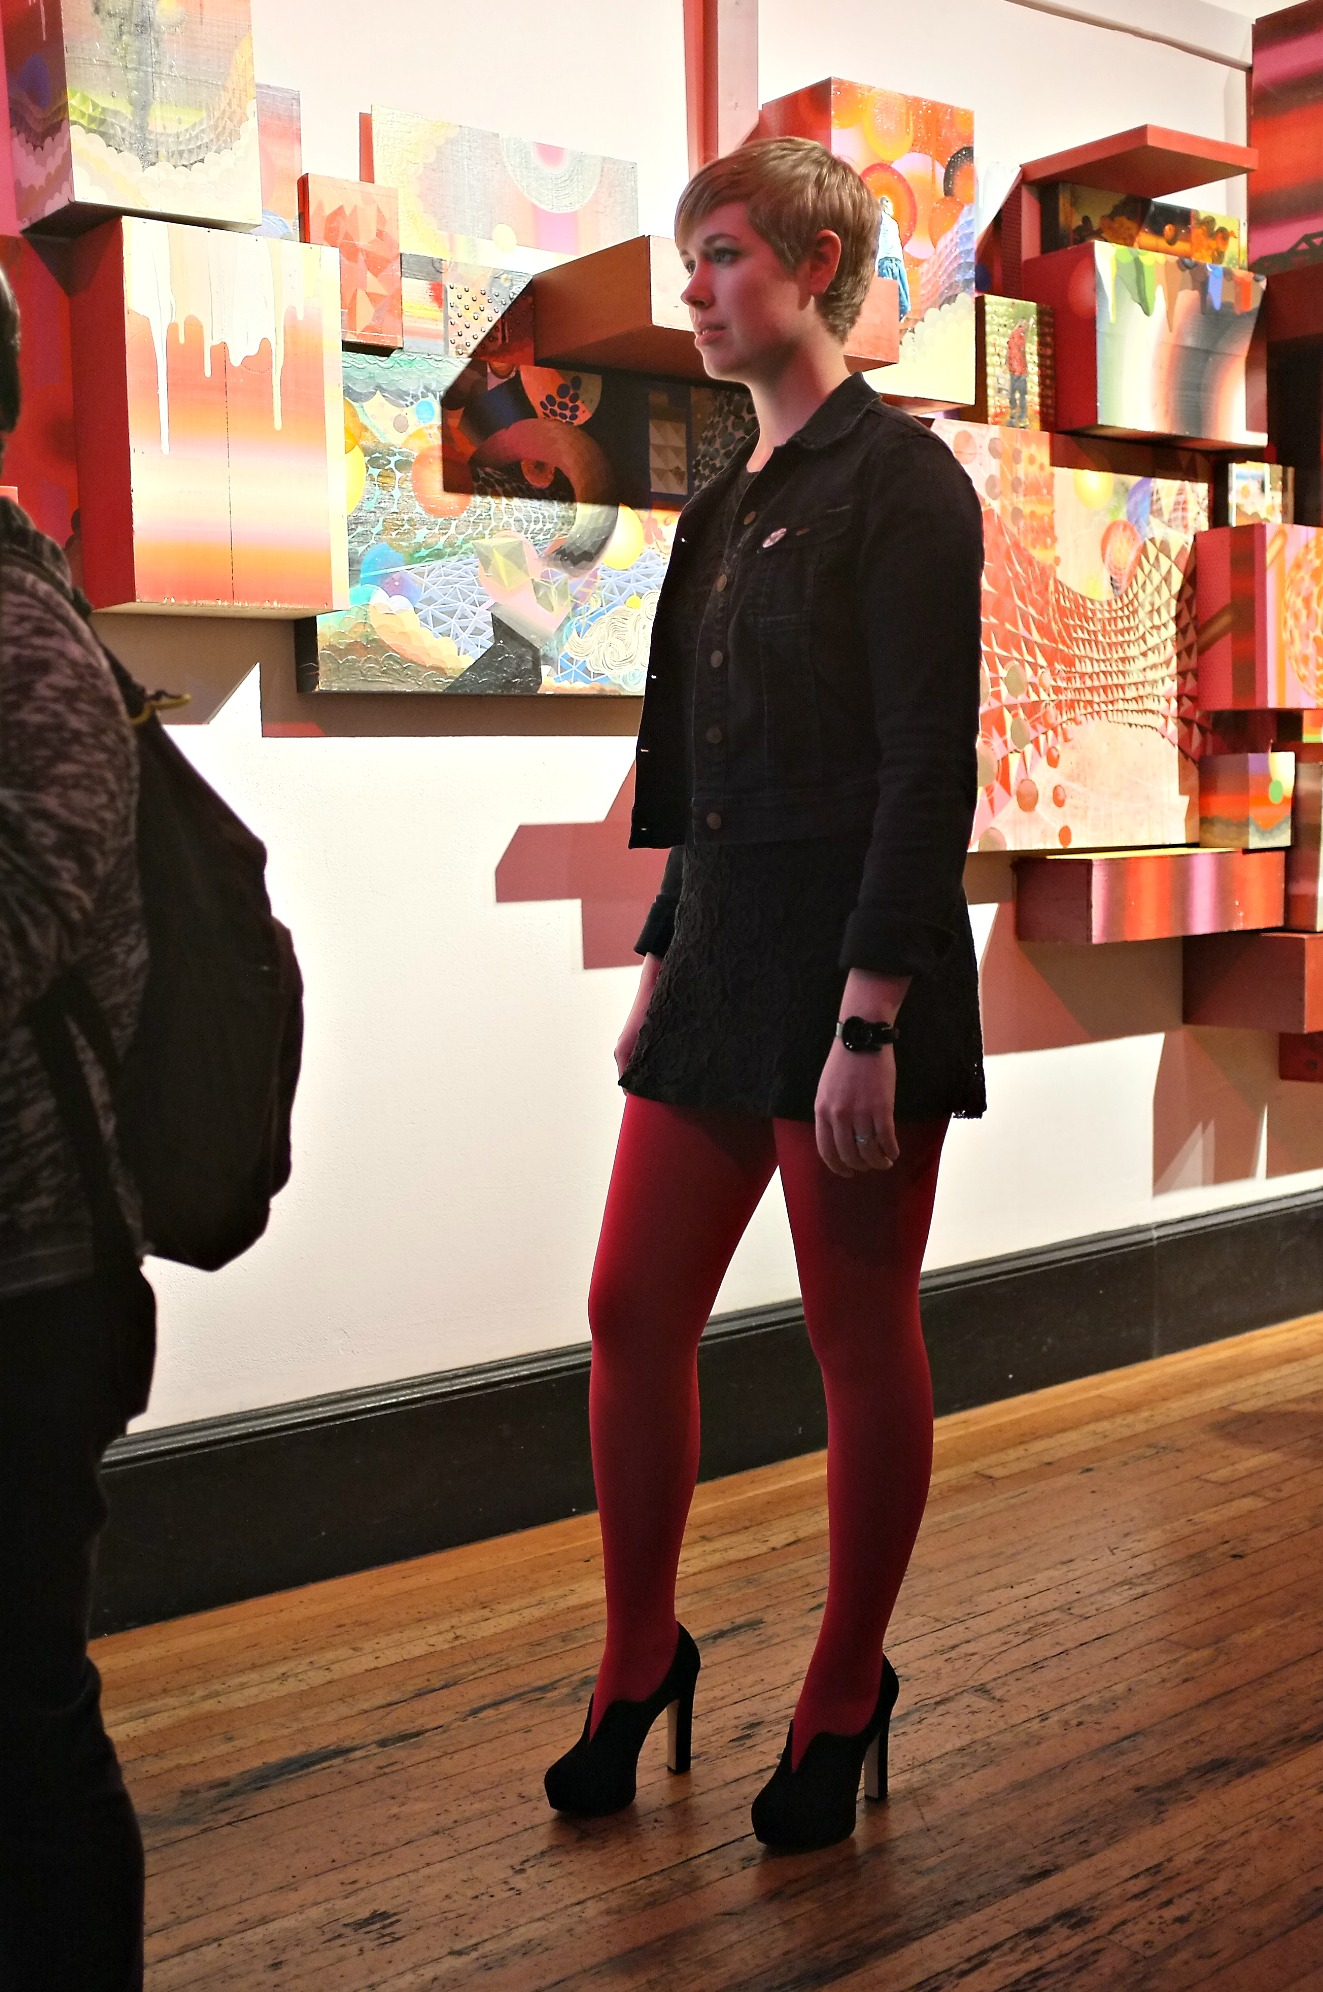 111 Minna, Minna Gallery, red tights, red tights with black, San Francisco style